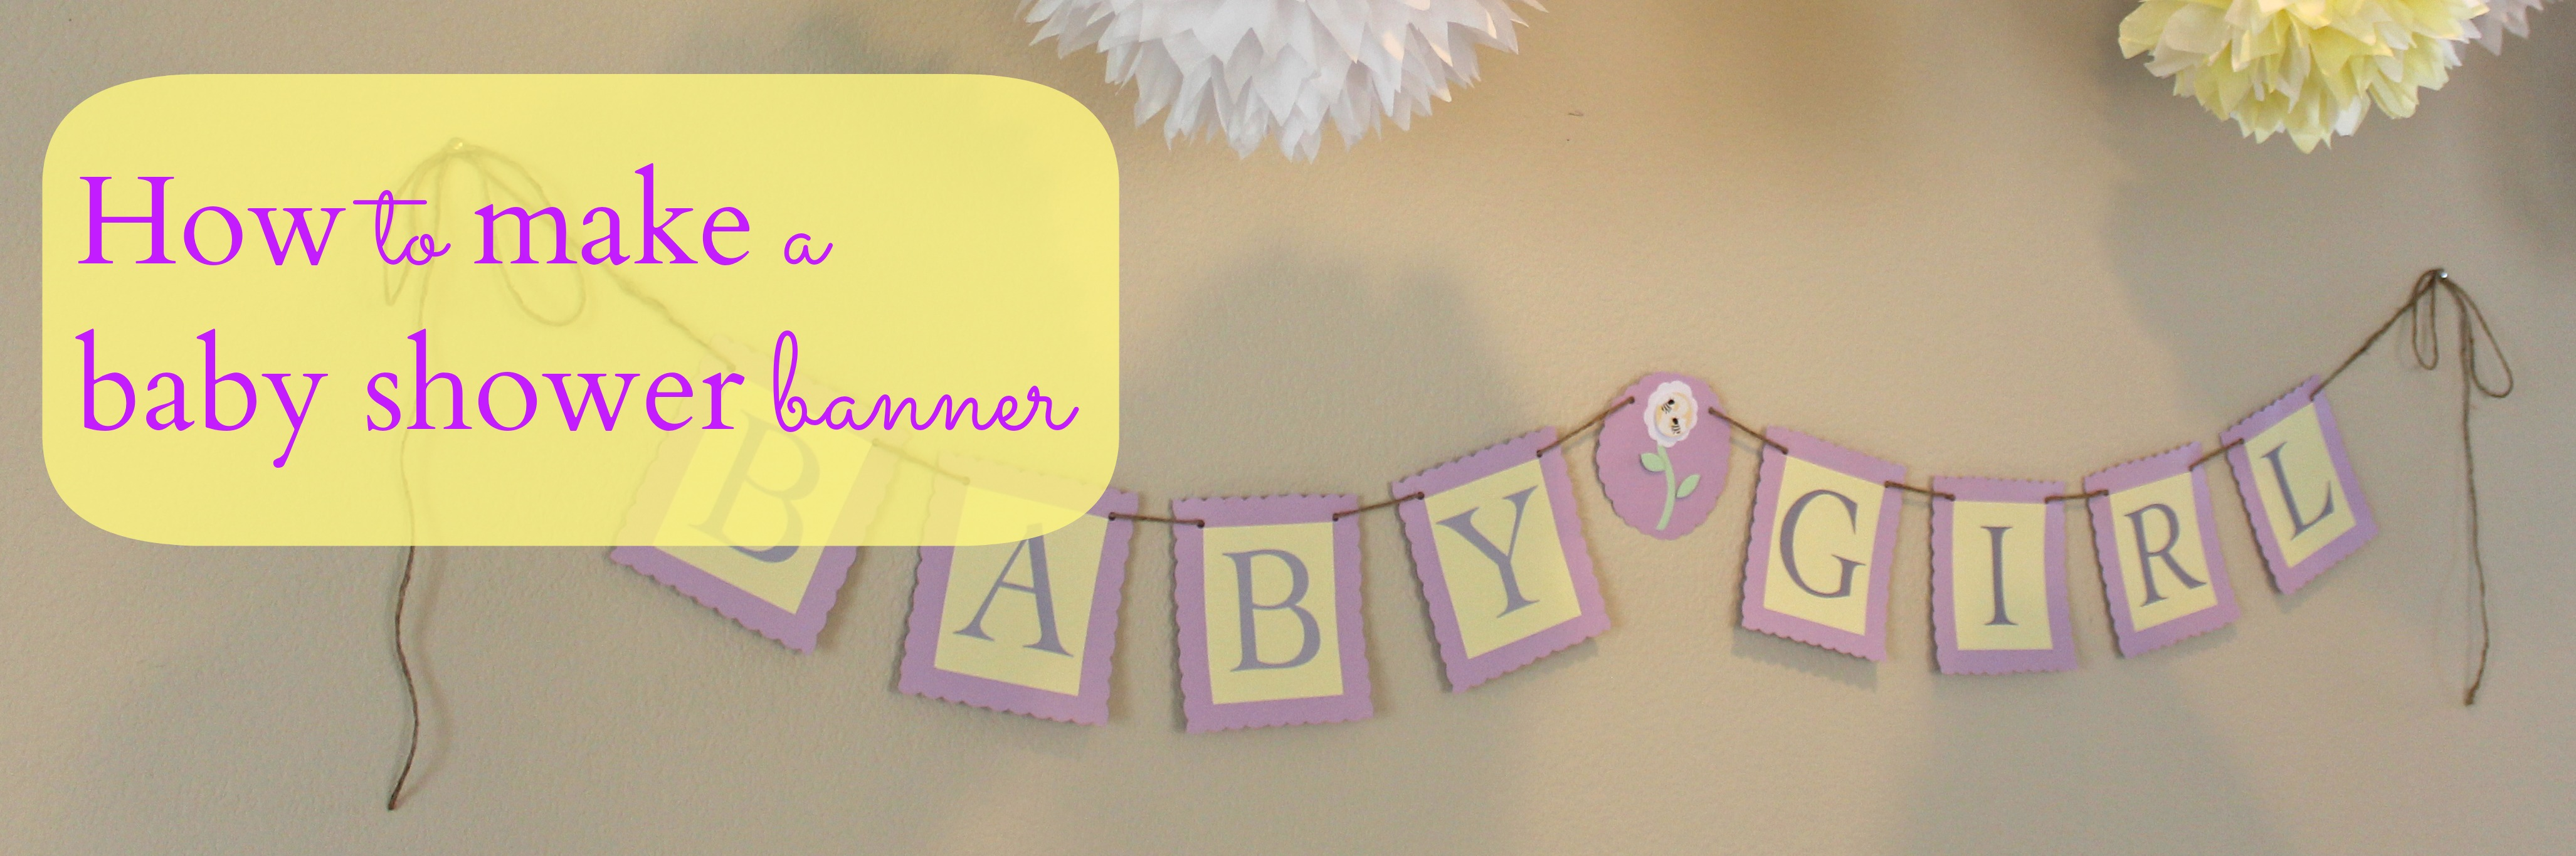 More baby shower stuff | The Silberez Life